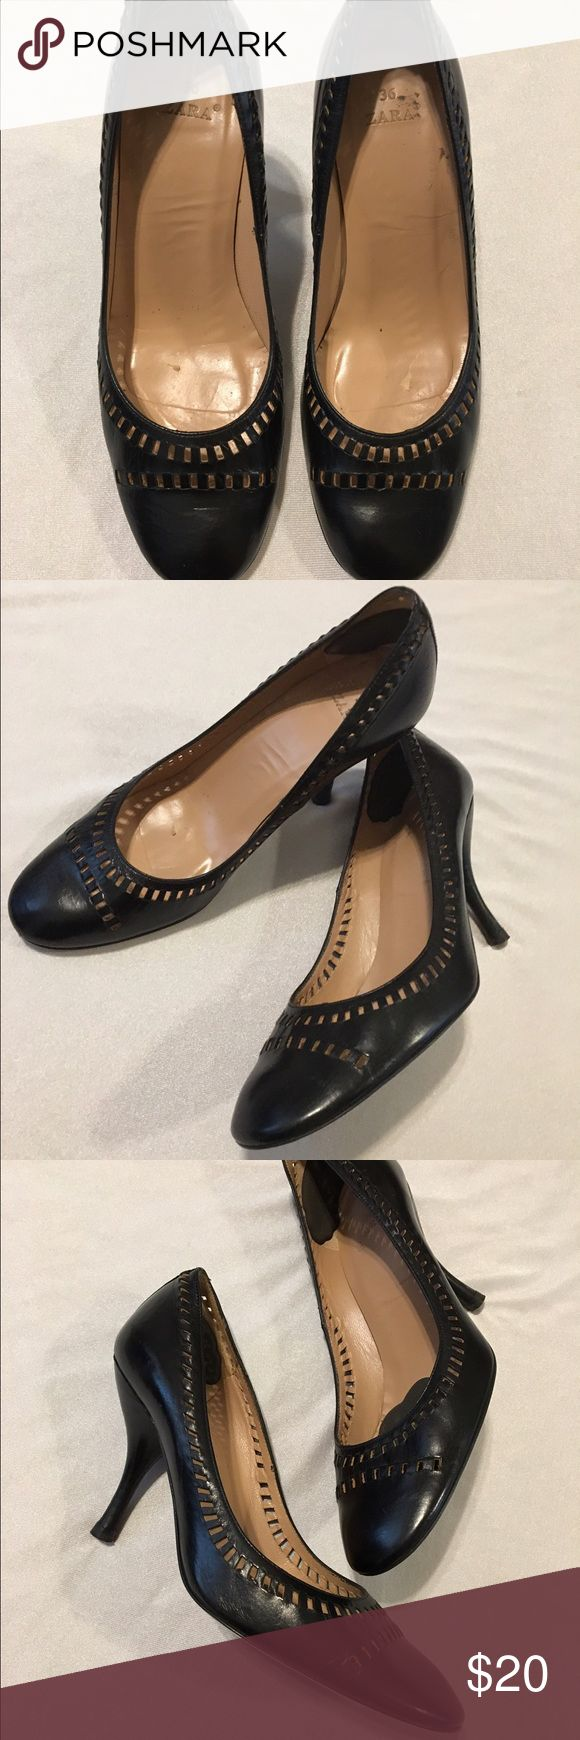 Zara black perforated leather vintage pumps. Vintage black pumps by Zara, made in Spain. Size 36. Perforated design around shoe opening and across toe front. Slightly used, good condition. Zara Shoes Heels